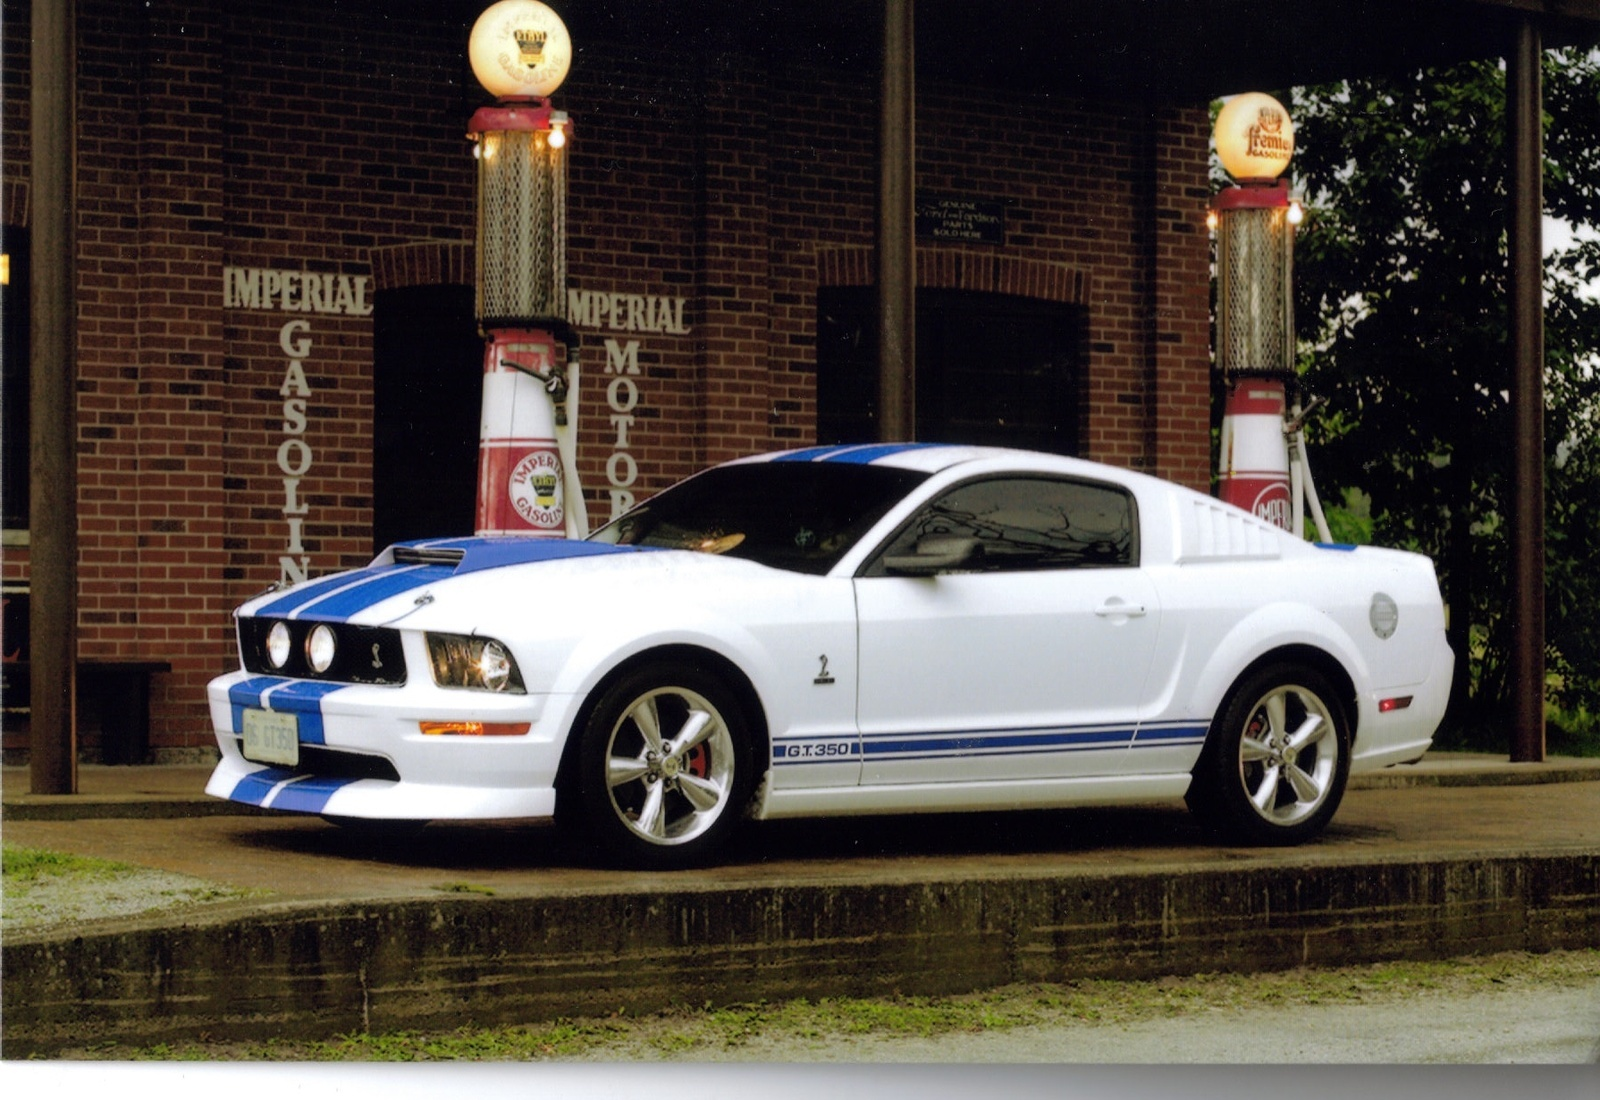 Ford Mustang Questions - What is the best vintage year for a Mustang ...